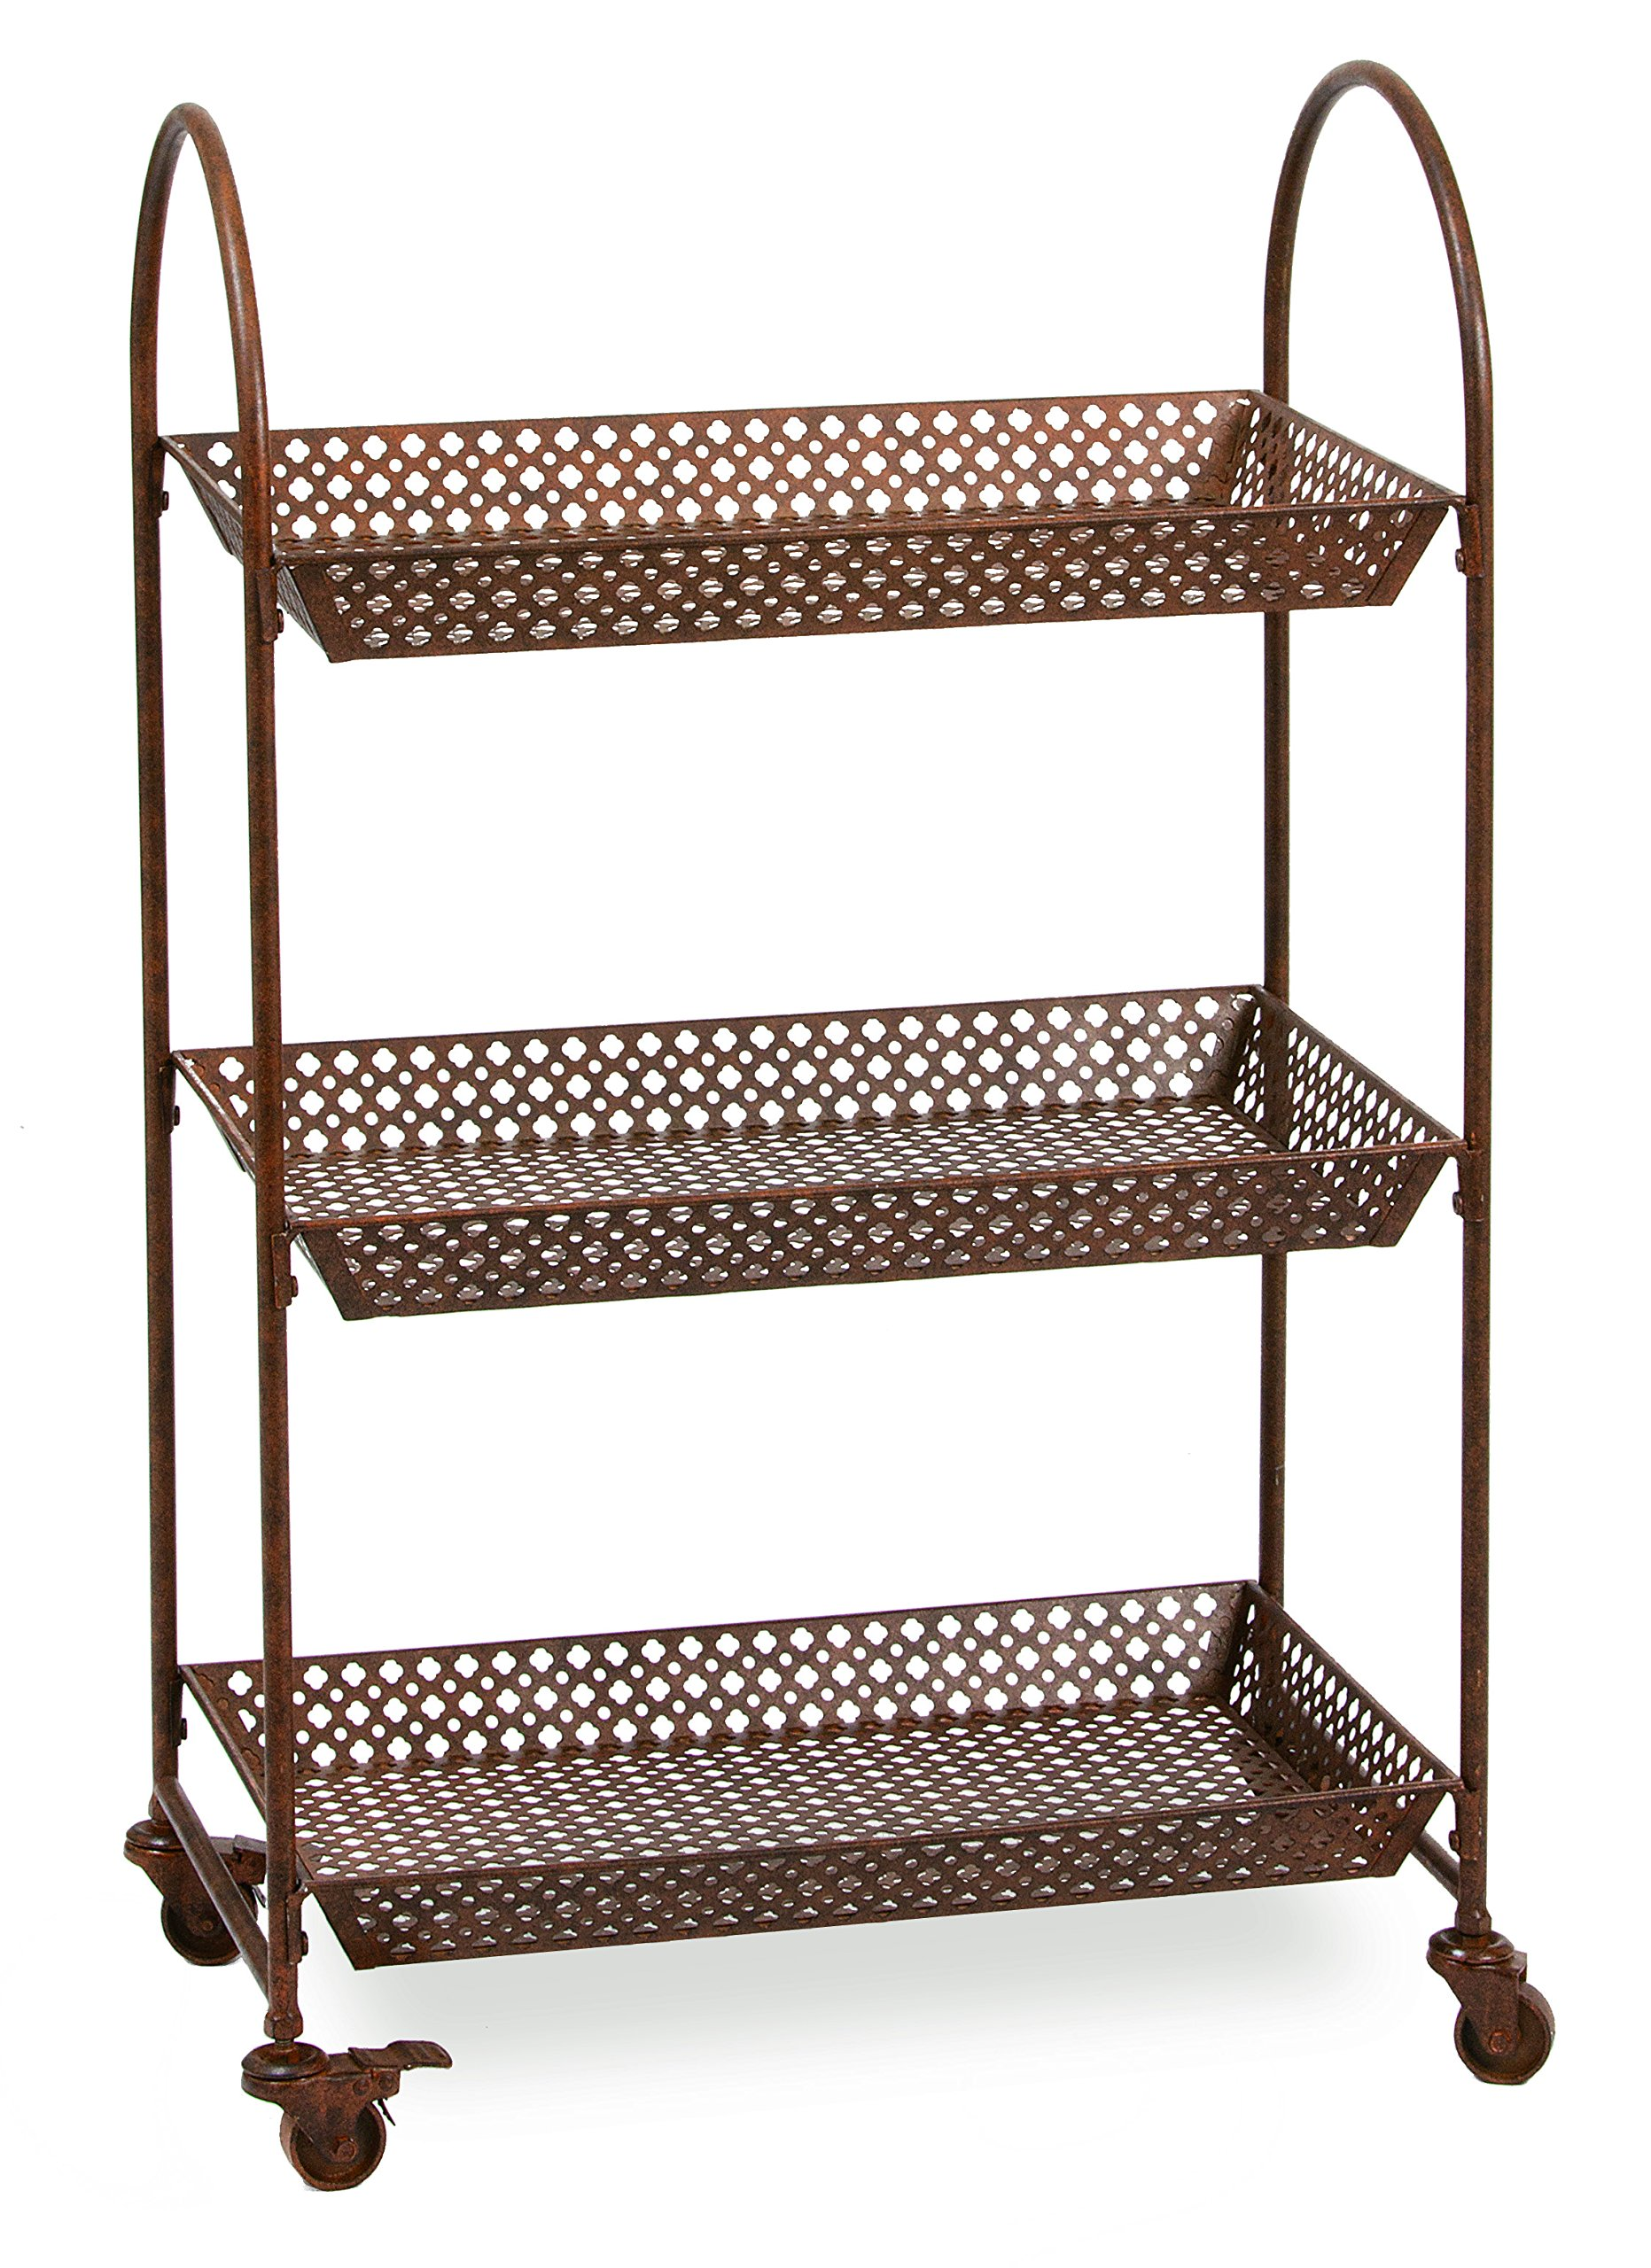 Deer Park Ironworks TC109 Rolling 3 Tier Cart with Locking Wheels, 24'' L x 14'' D x 38'' H, Natural Patina by Deer Park Ironworks